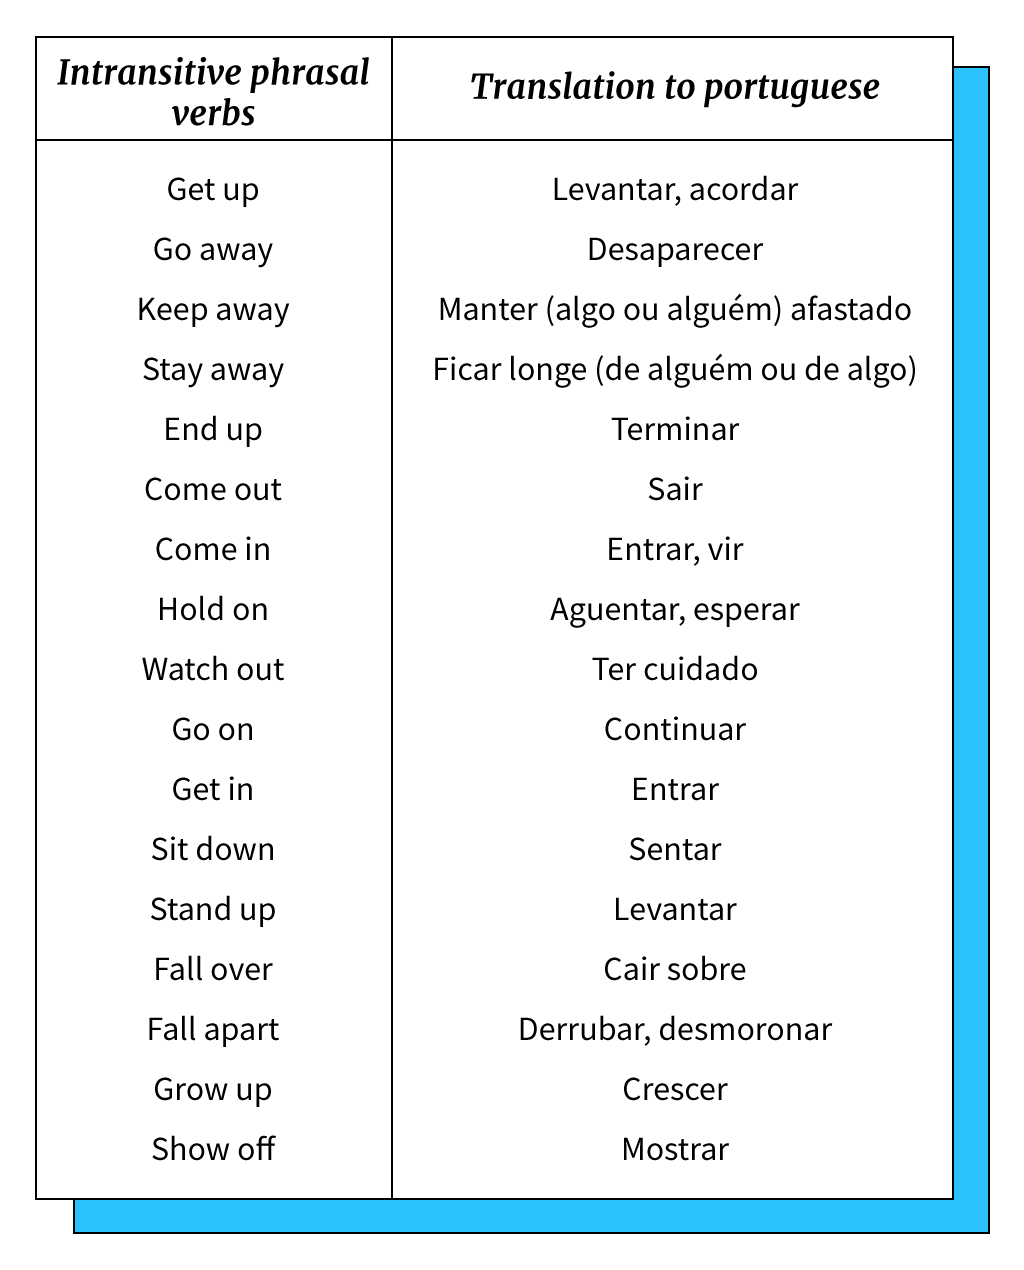 Lista de phrasal verbs intransitivos.